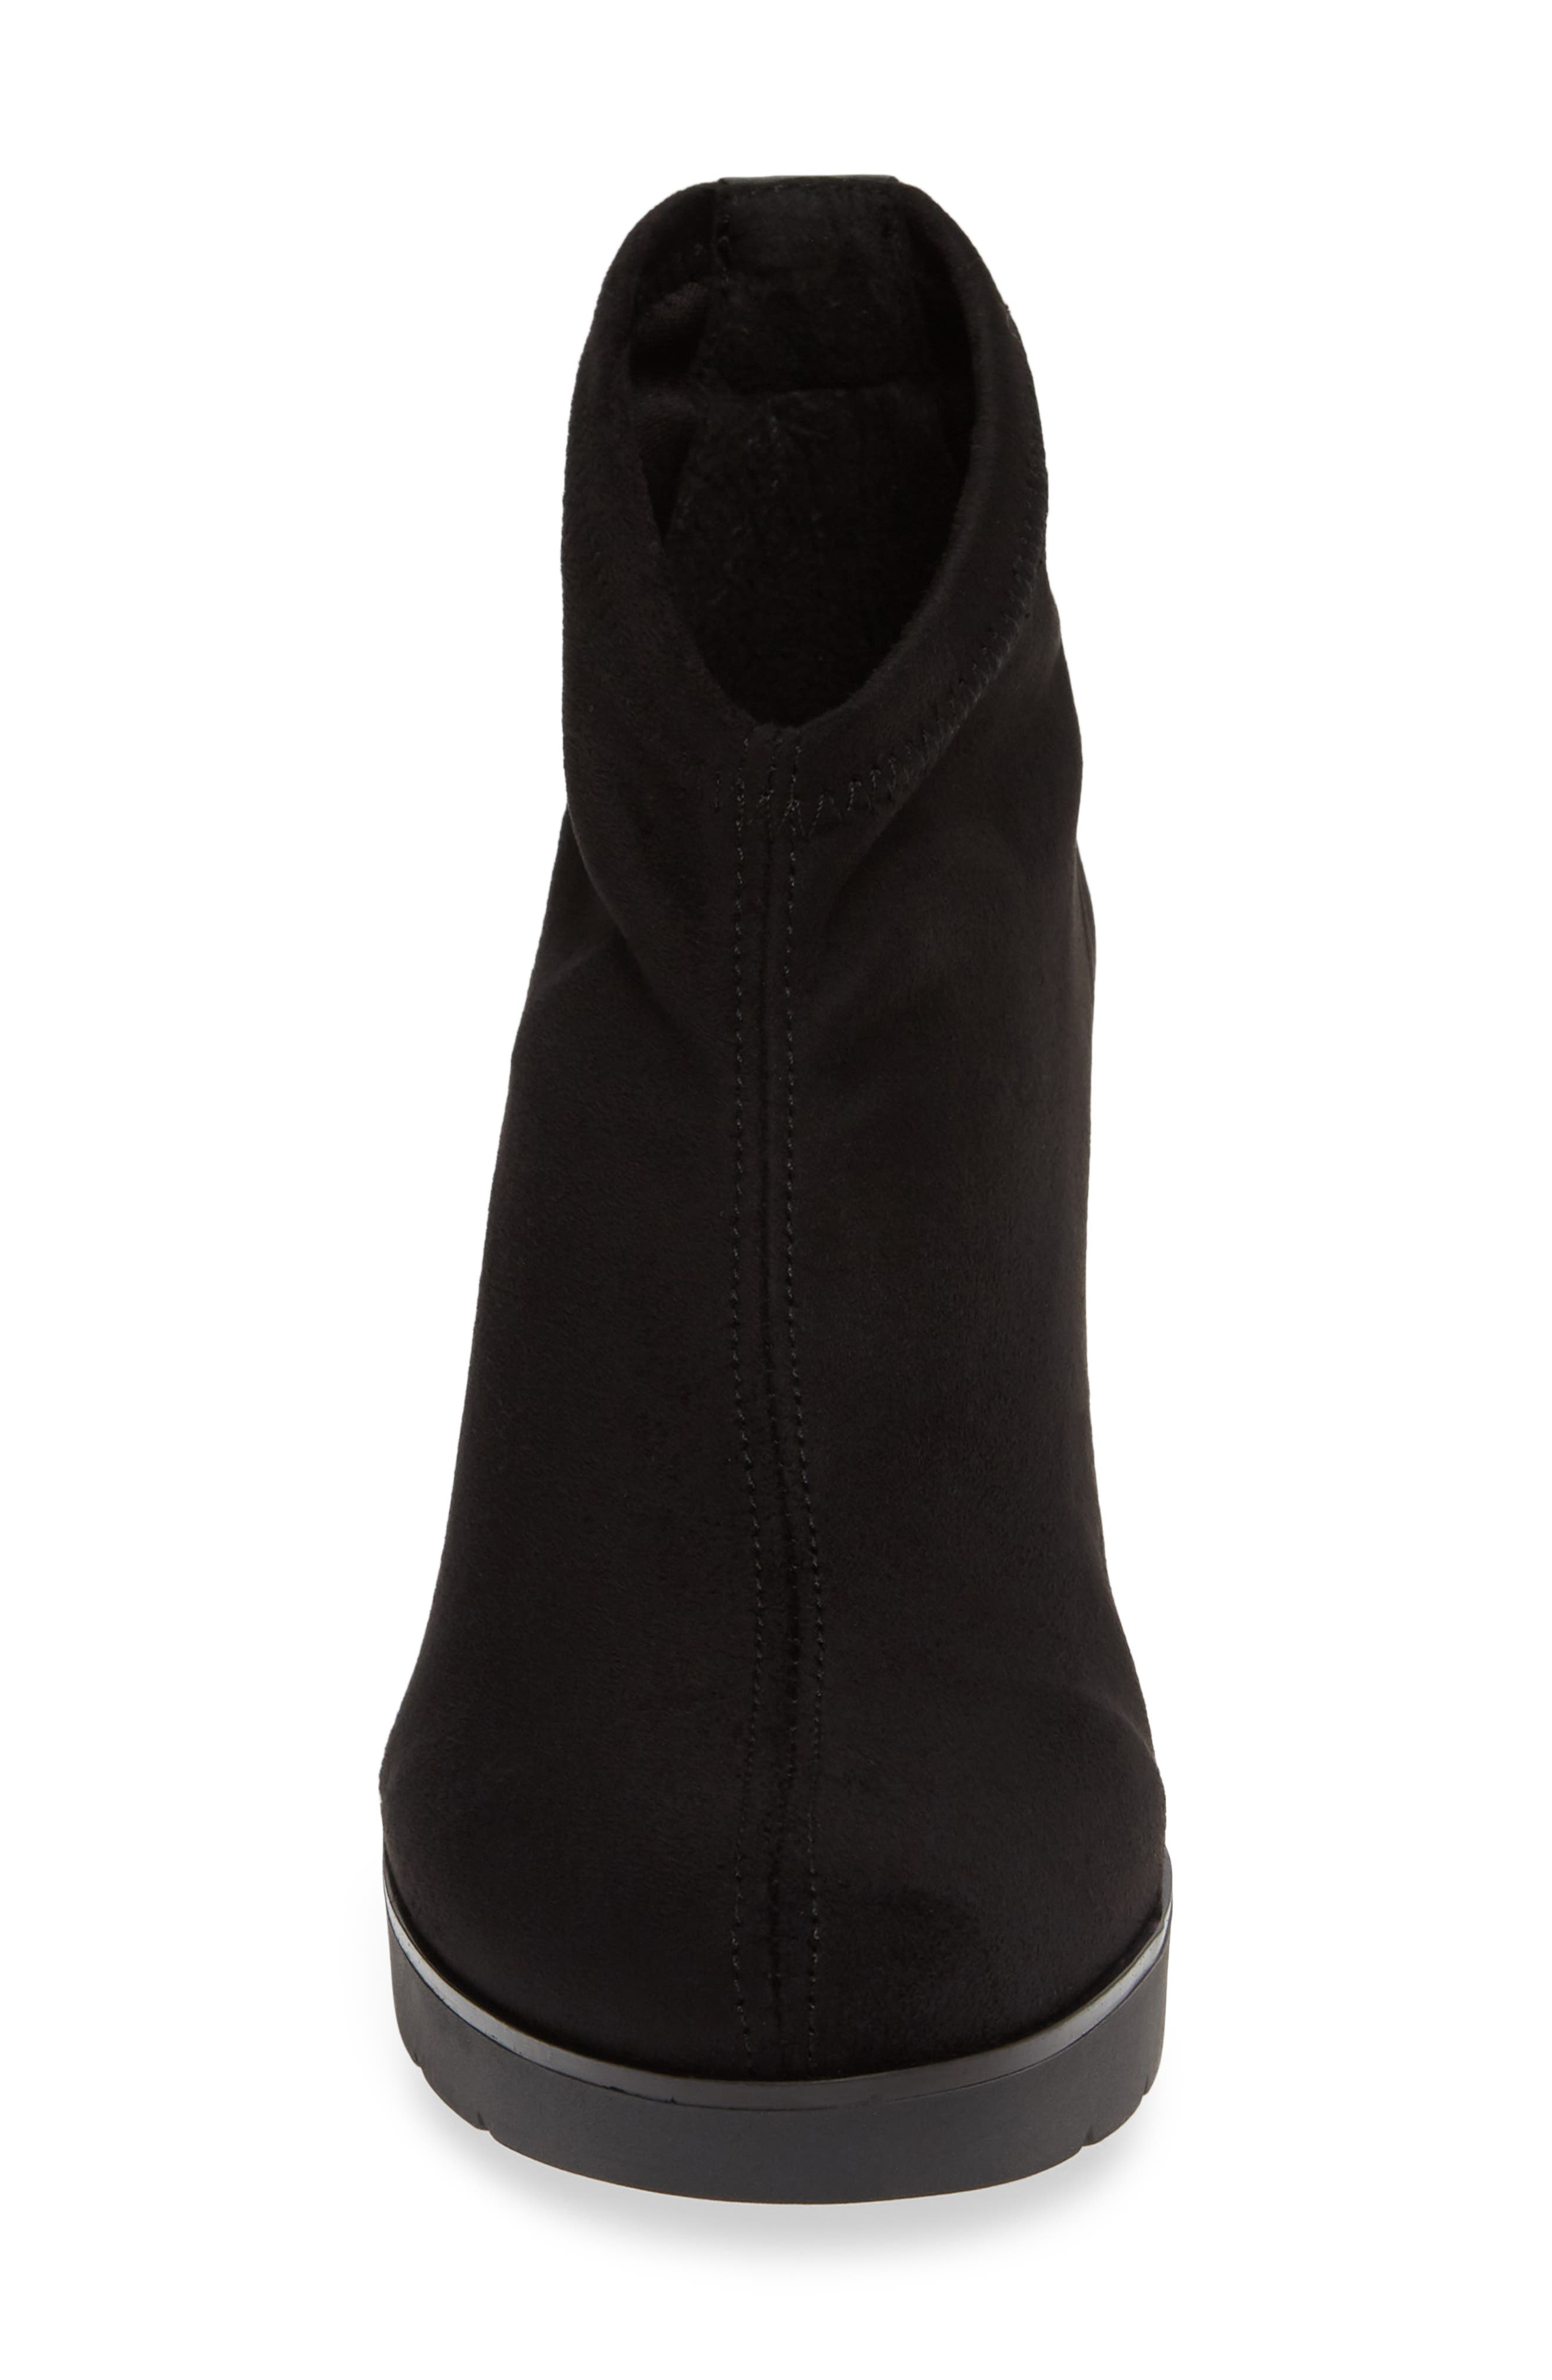 'Finley' Bootie,                             Alternate thumbnail 4, color,                             BLACK/ BLACK FABRIC